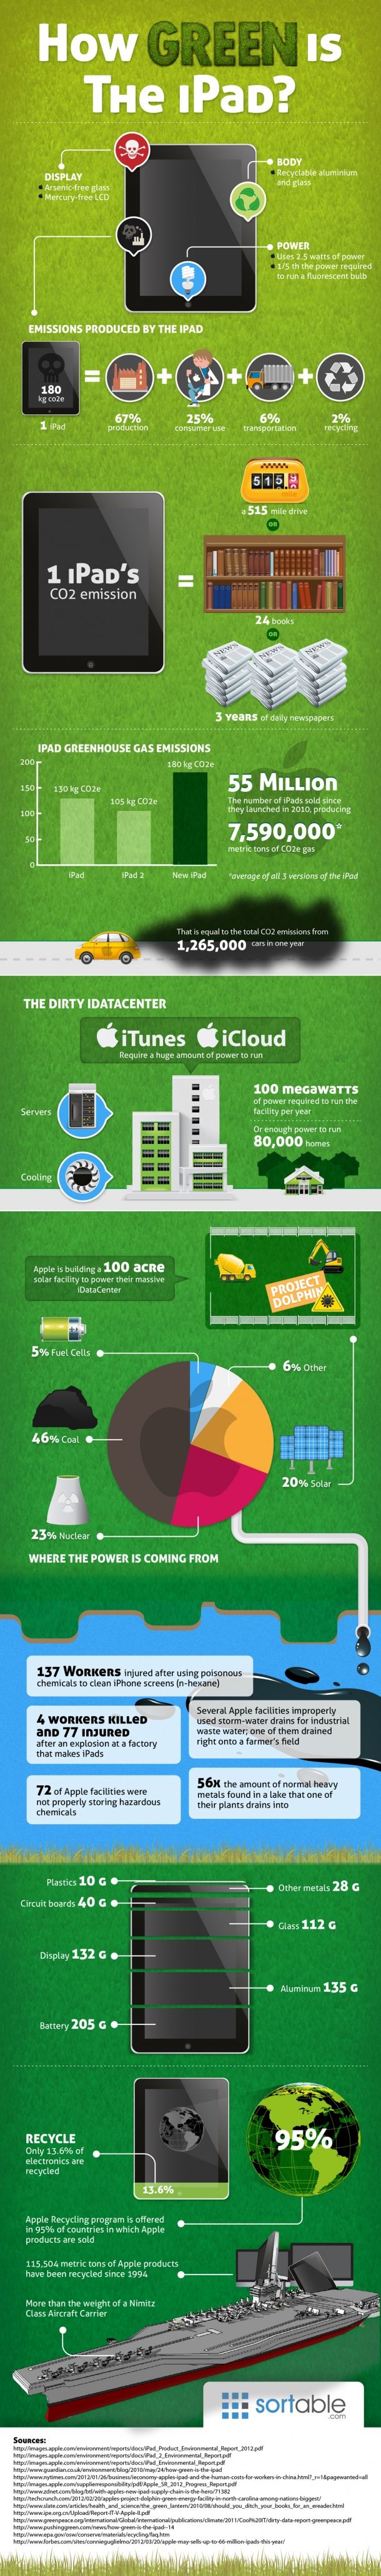 How Green Is The iPad? [INFOGRAPHIC] Infographic, Ipad